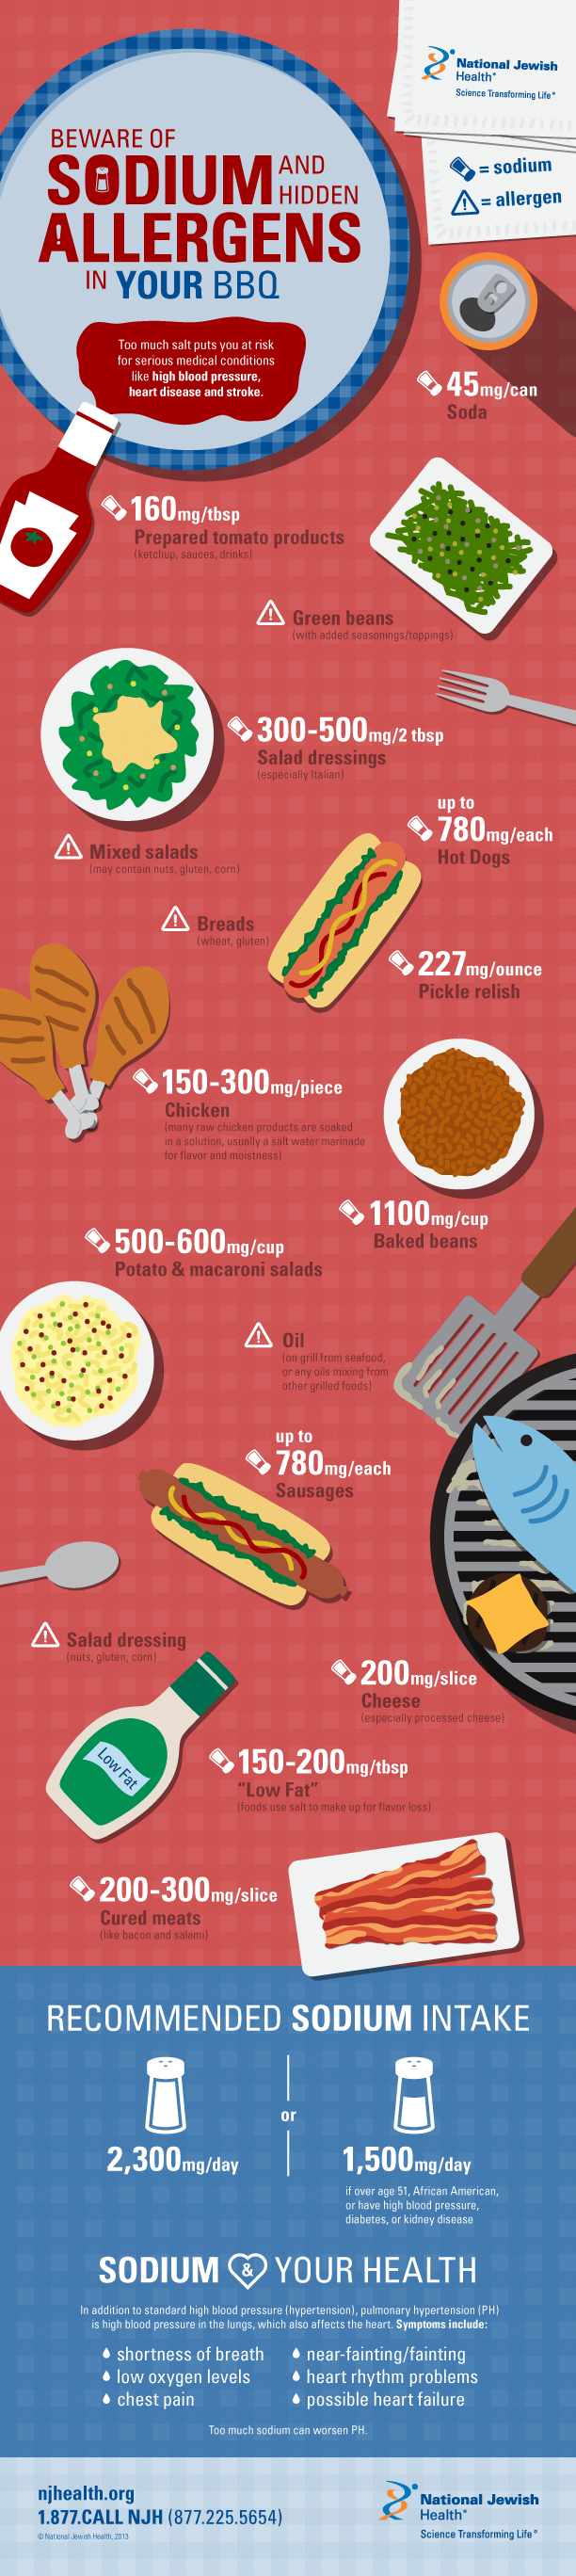 Beware of Sodium and Hidden Allergens in Your BBQ Infographic